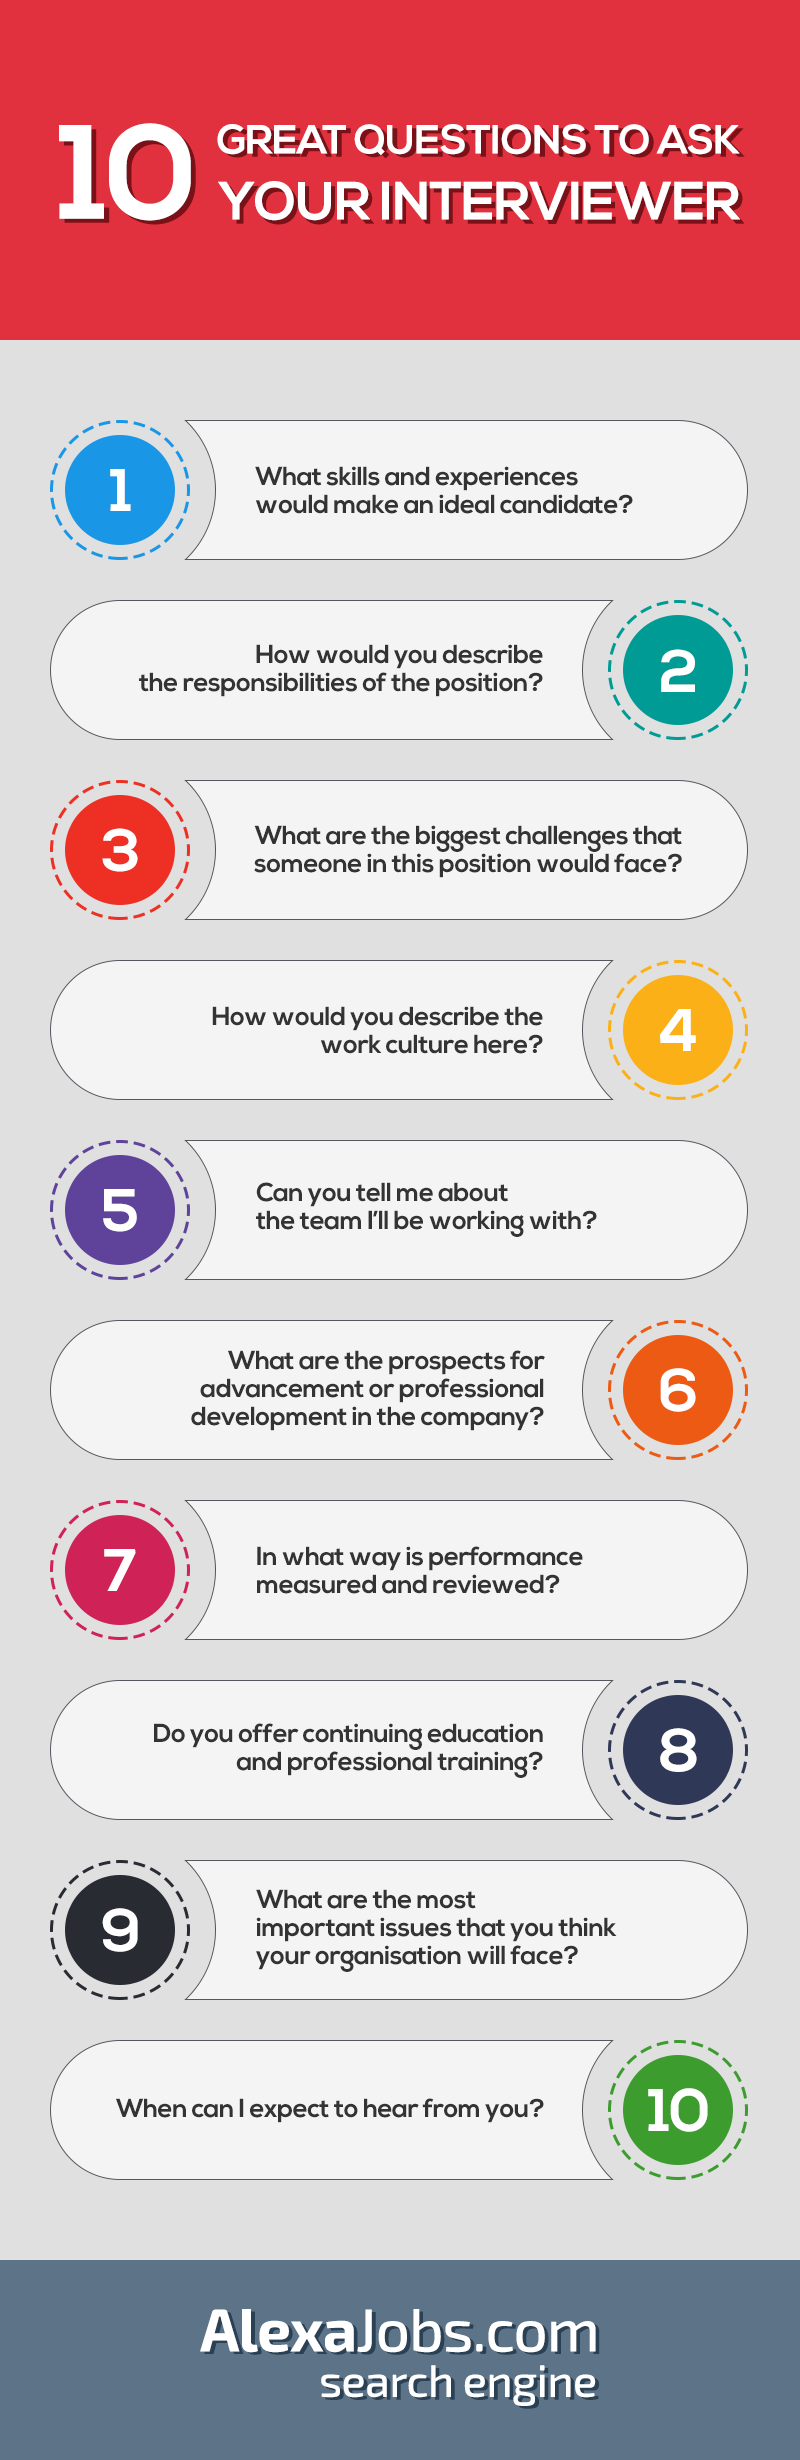 questions to ask your interviewer stars shine on 10 great questions to ask your interviewer infographic often job interviews can feel like an interrogation but they re meant to be a conversation